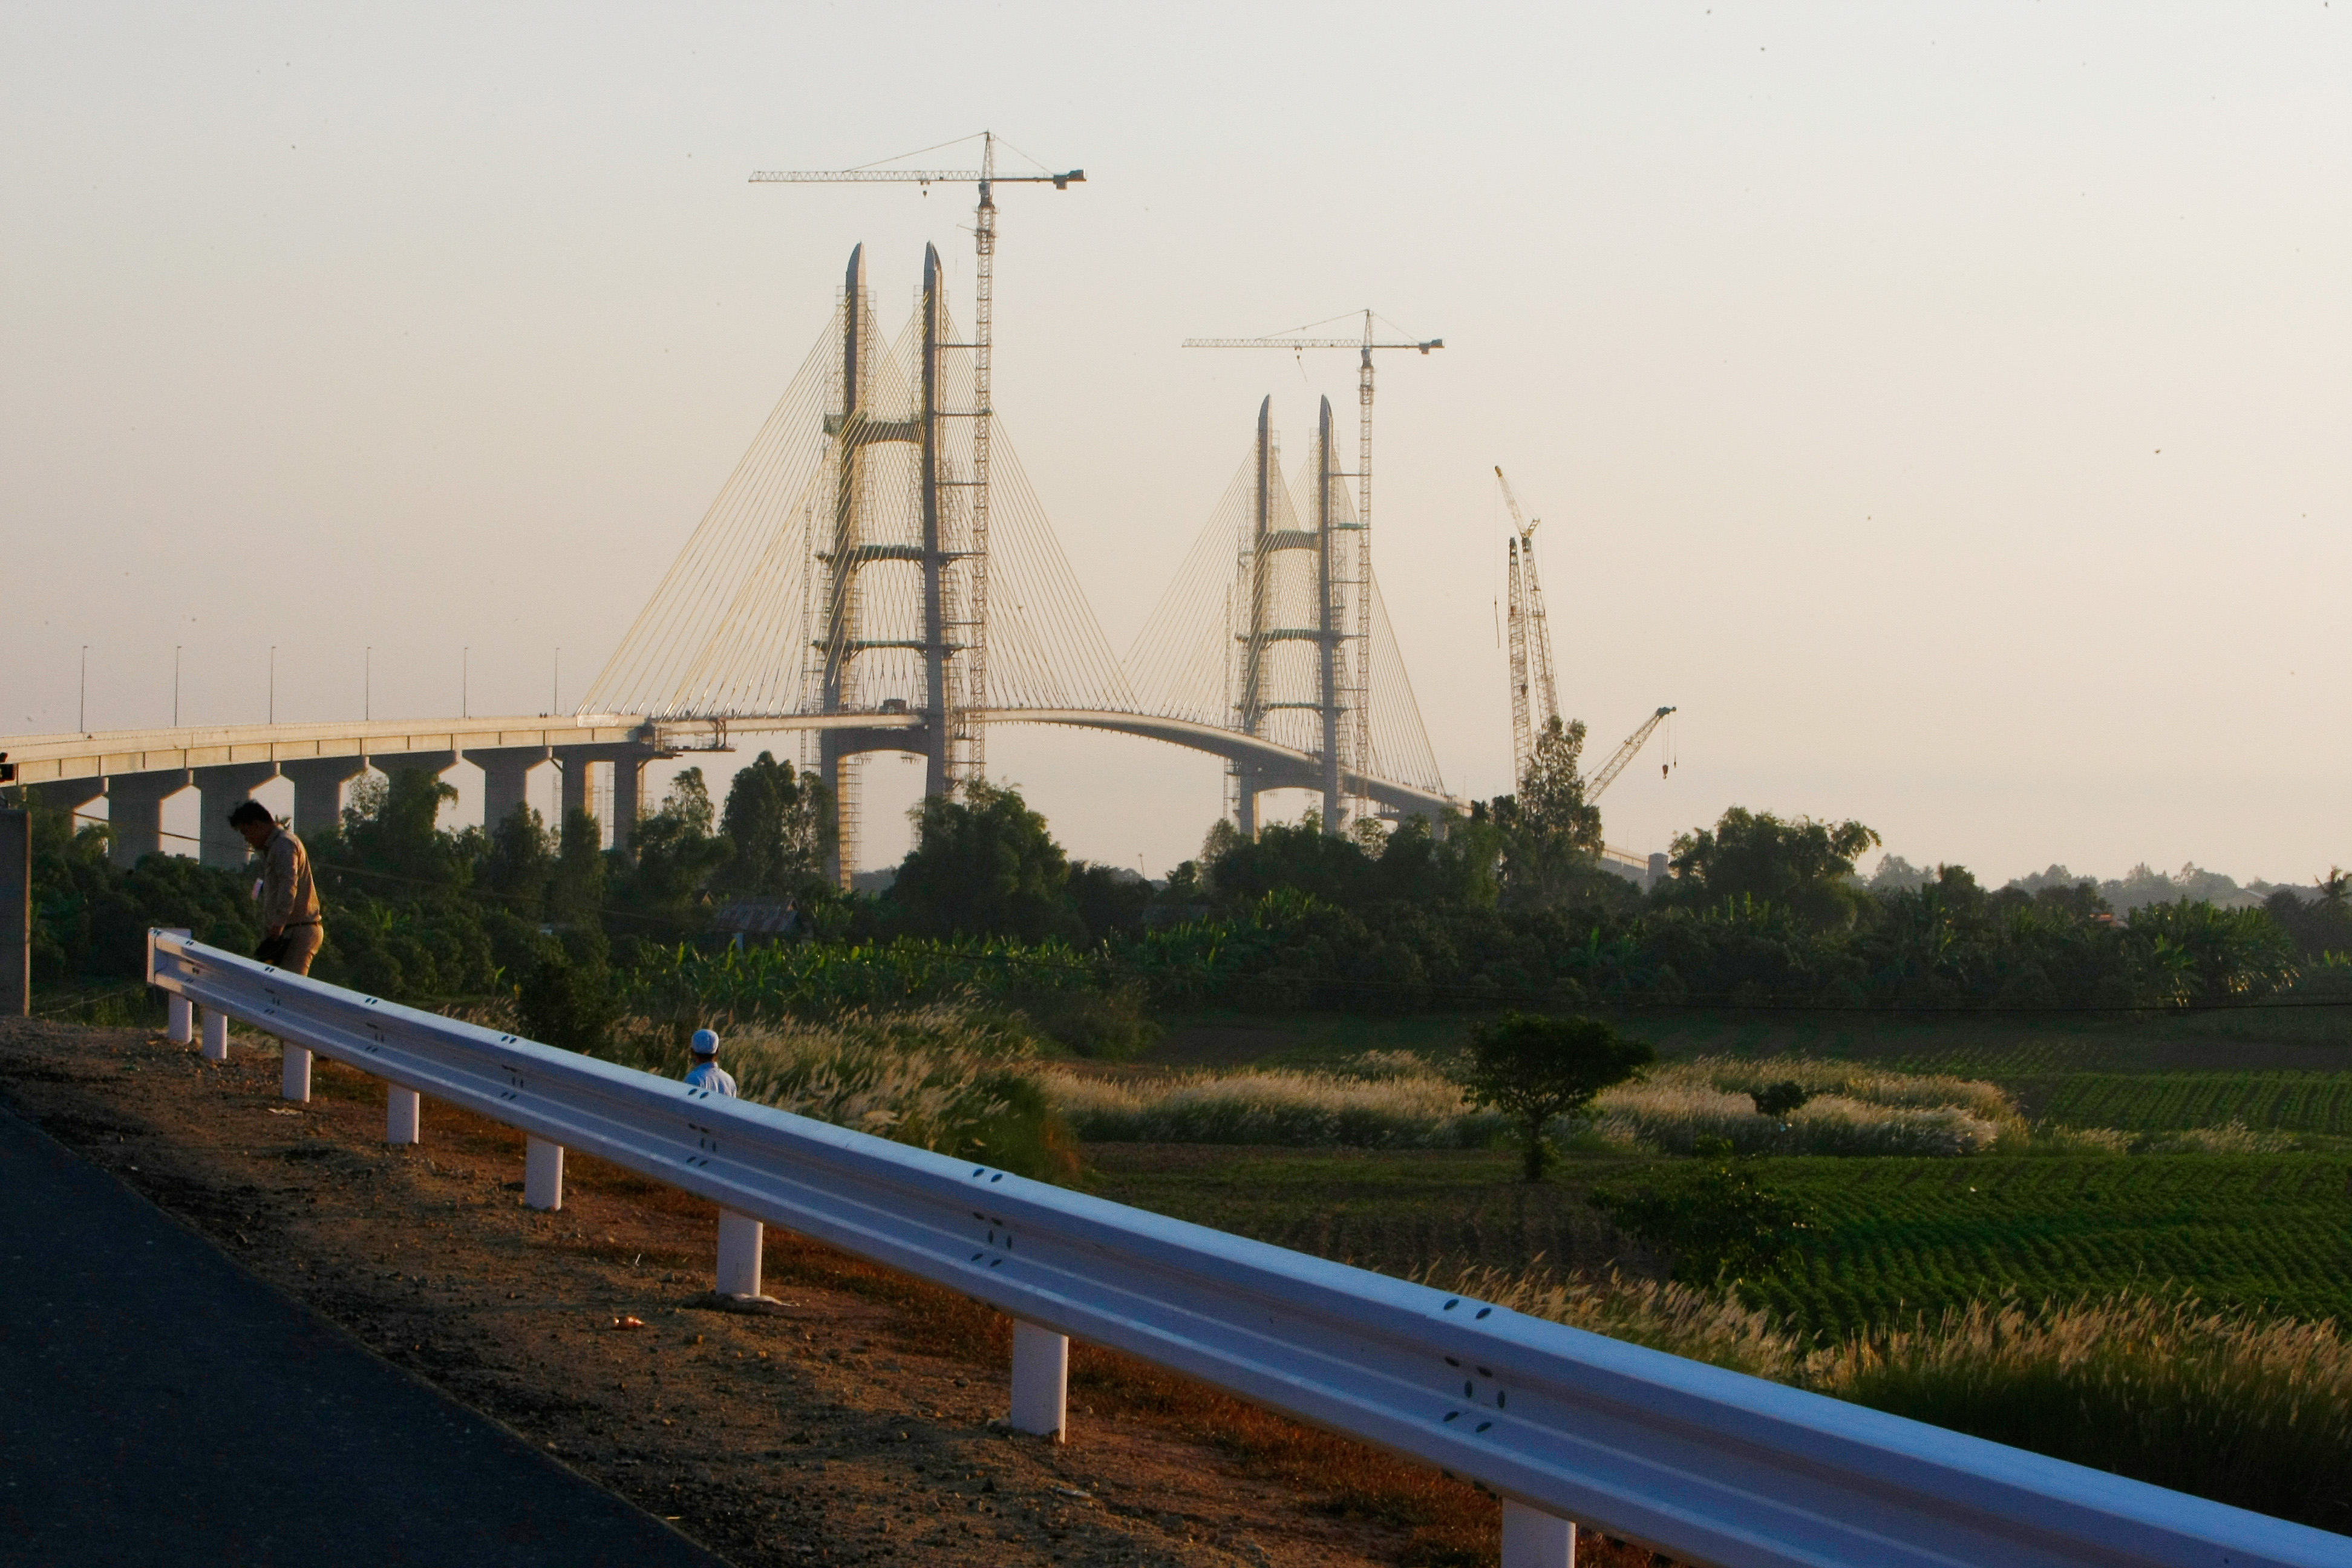 Work continues on Cambodia longest bridge before it is inaugurated by Hun Sen, Cambodian Prime Minister in Neak Loeung, southeast of Phnom Penh, Cambodia, Jan. 14, 2015.